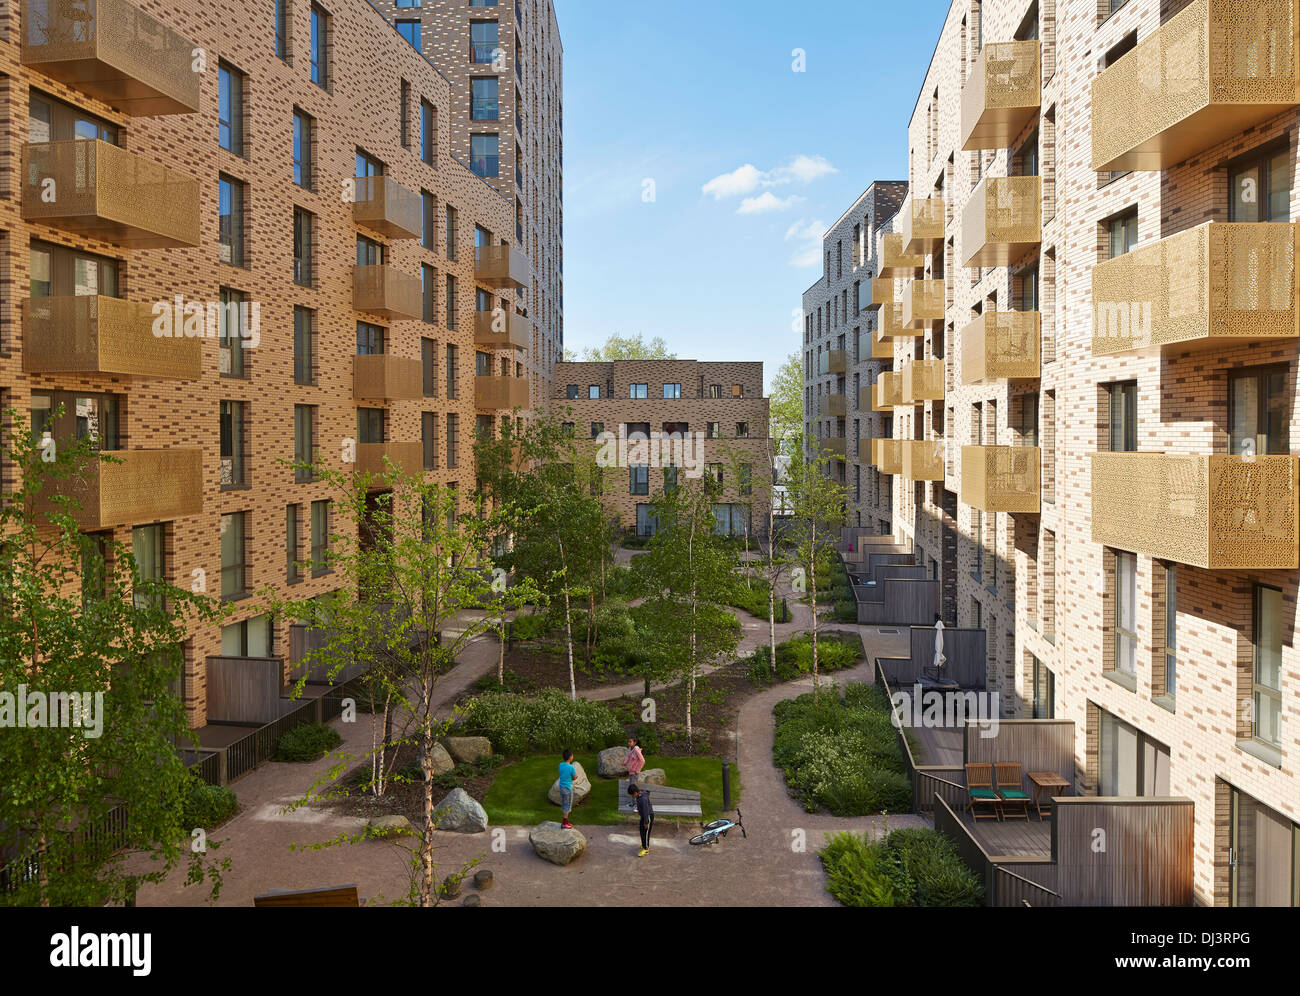 St. Andrews United Kingdom  City new picture : St Andrew's Apartment Complex Bromley by bow, London, United Kingdom ...